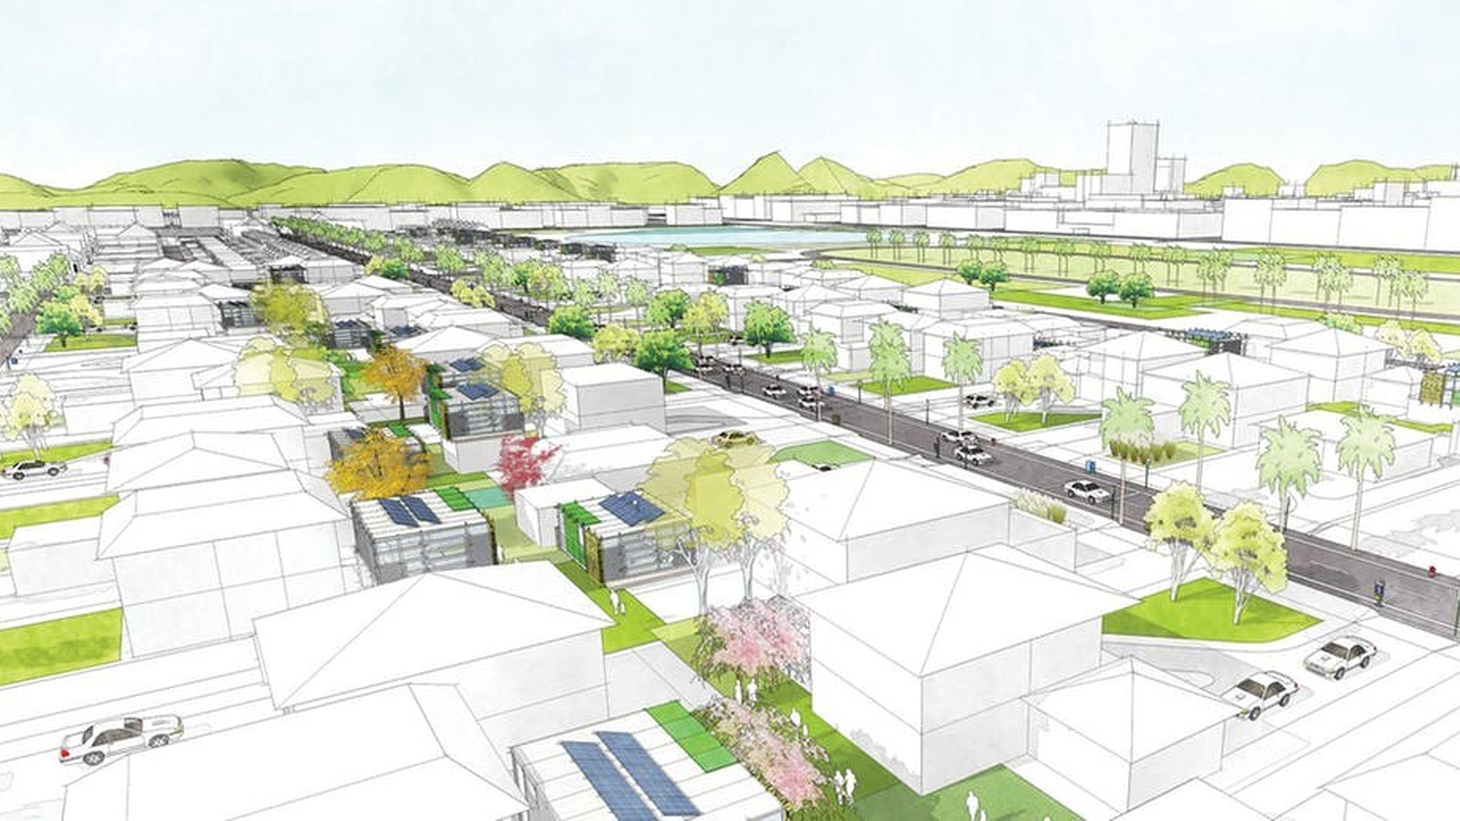 Lilliana Castro, Allen Guillen, and Cheuk Nam Yu won first place in Yes to ADUs, a design competition